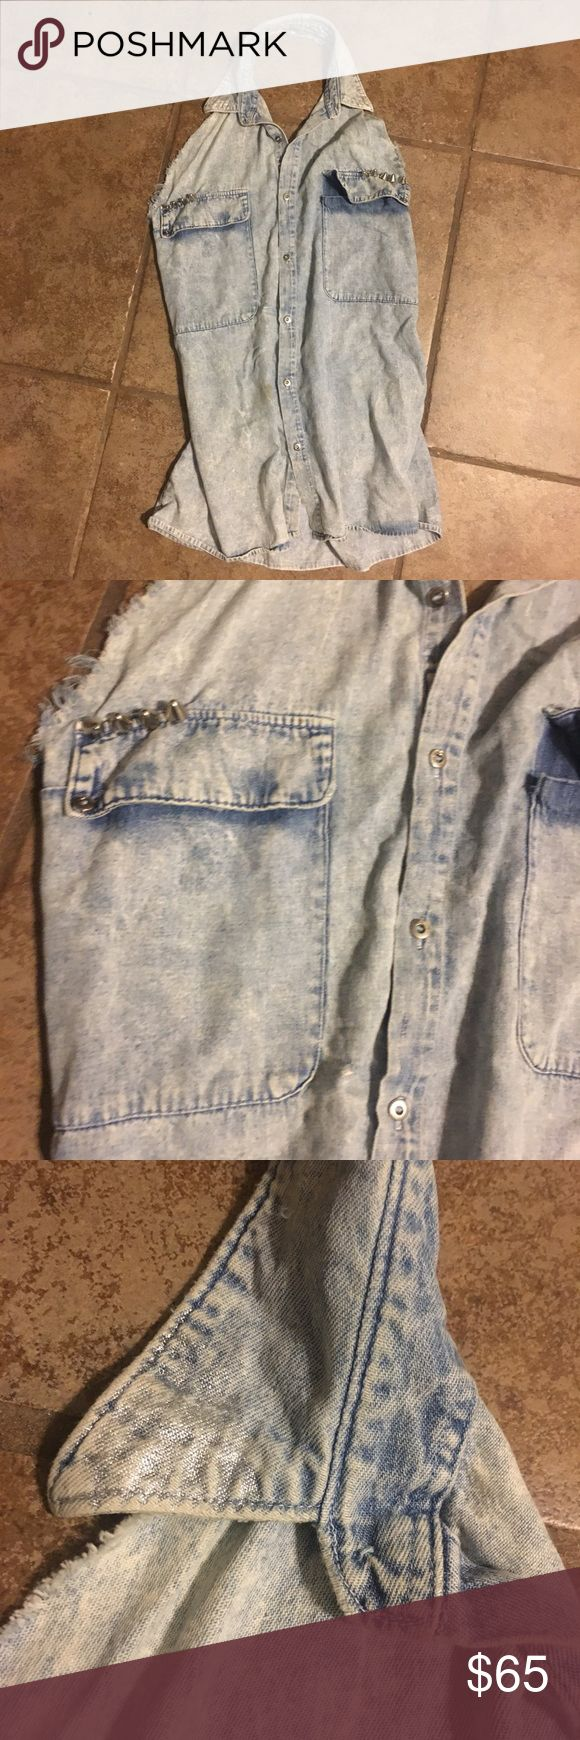 Backless denim dress Button up jean dress. Two pockets with studs on them. A collar with Silver tips. Perfect for festival season. Wears great with a pair of leggings J.F.Gee Dresses Backless